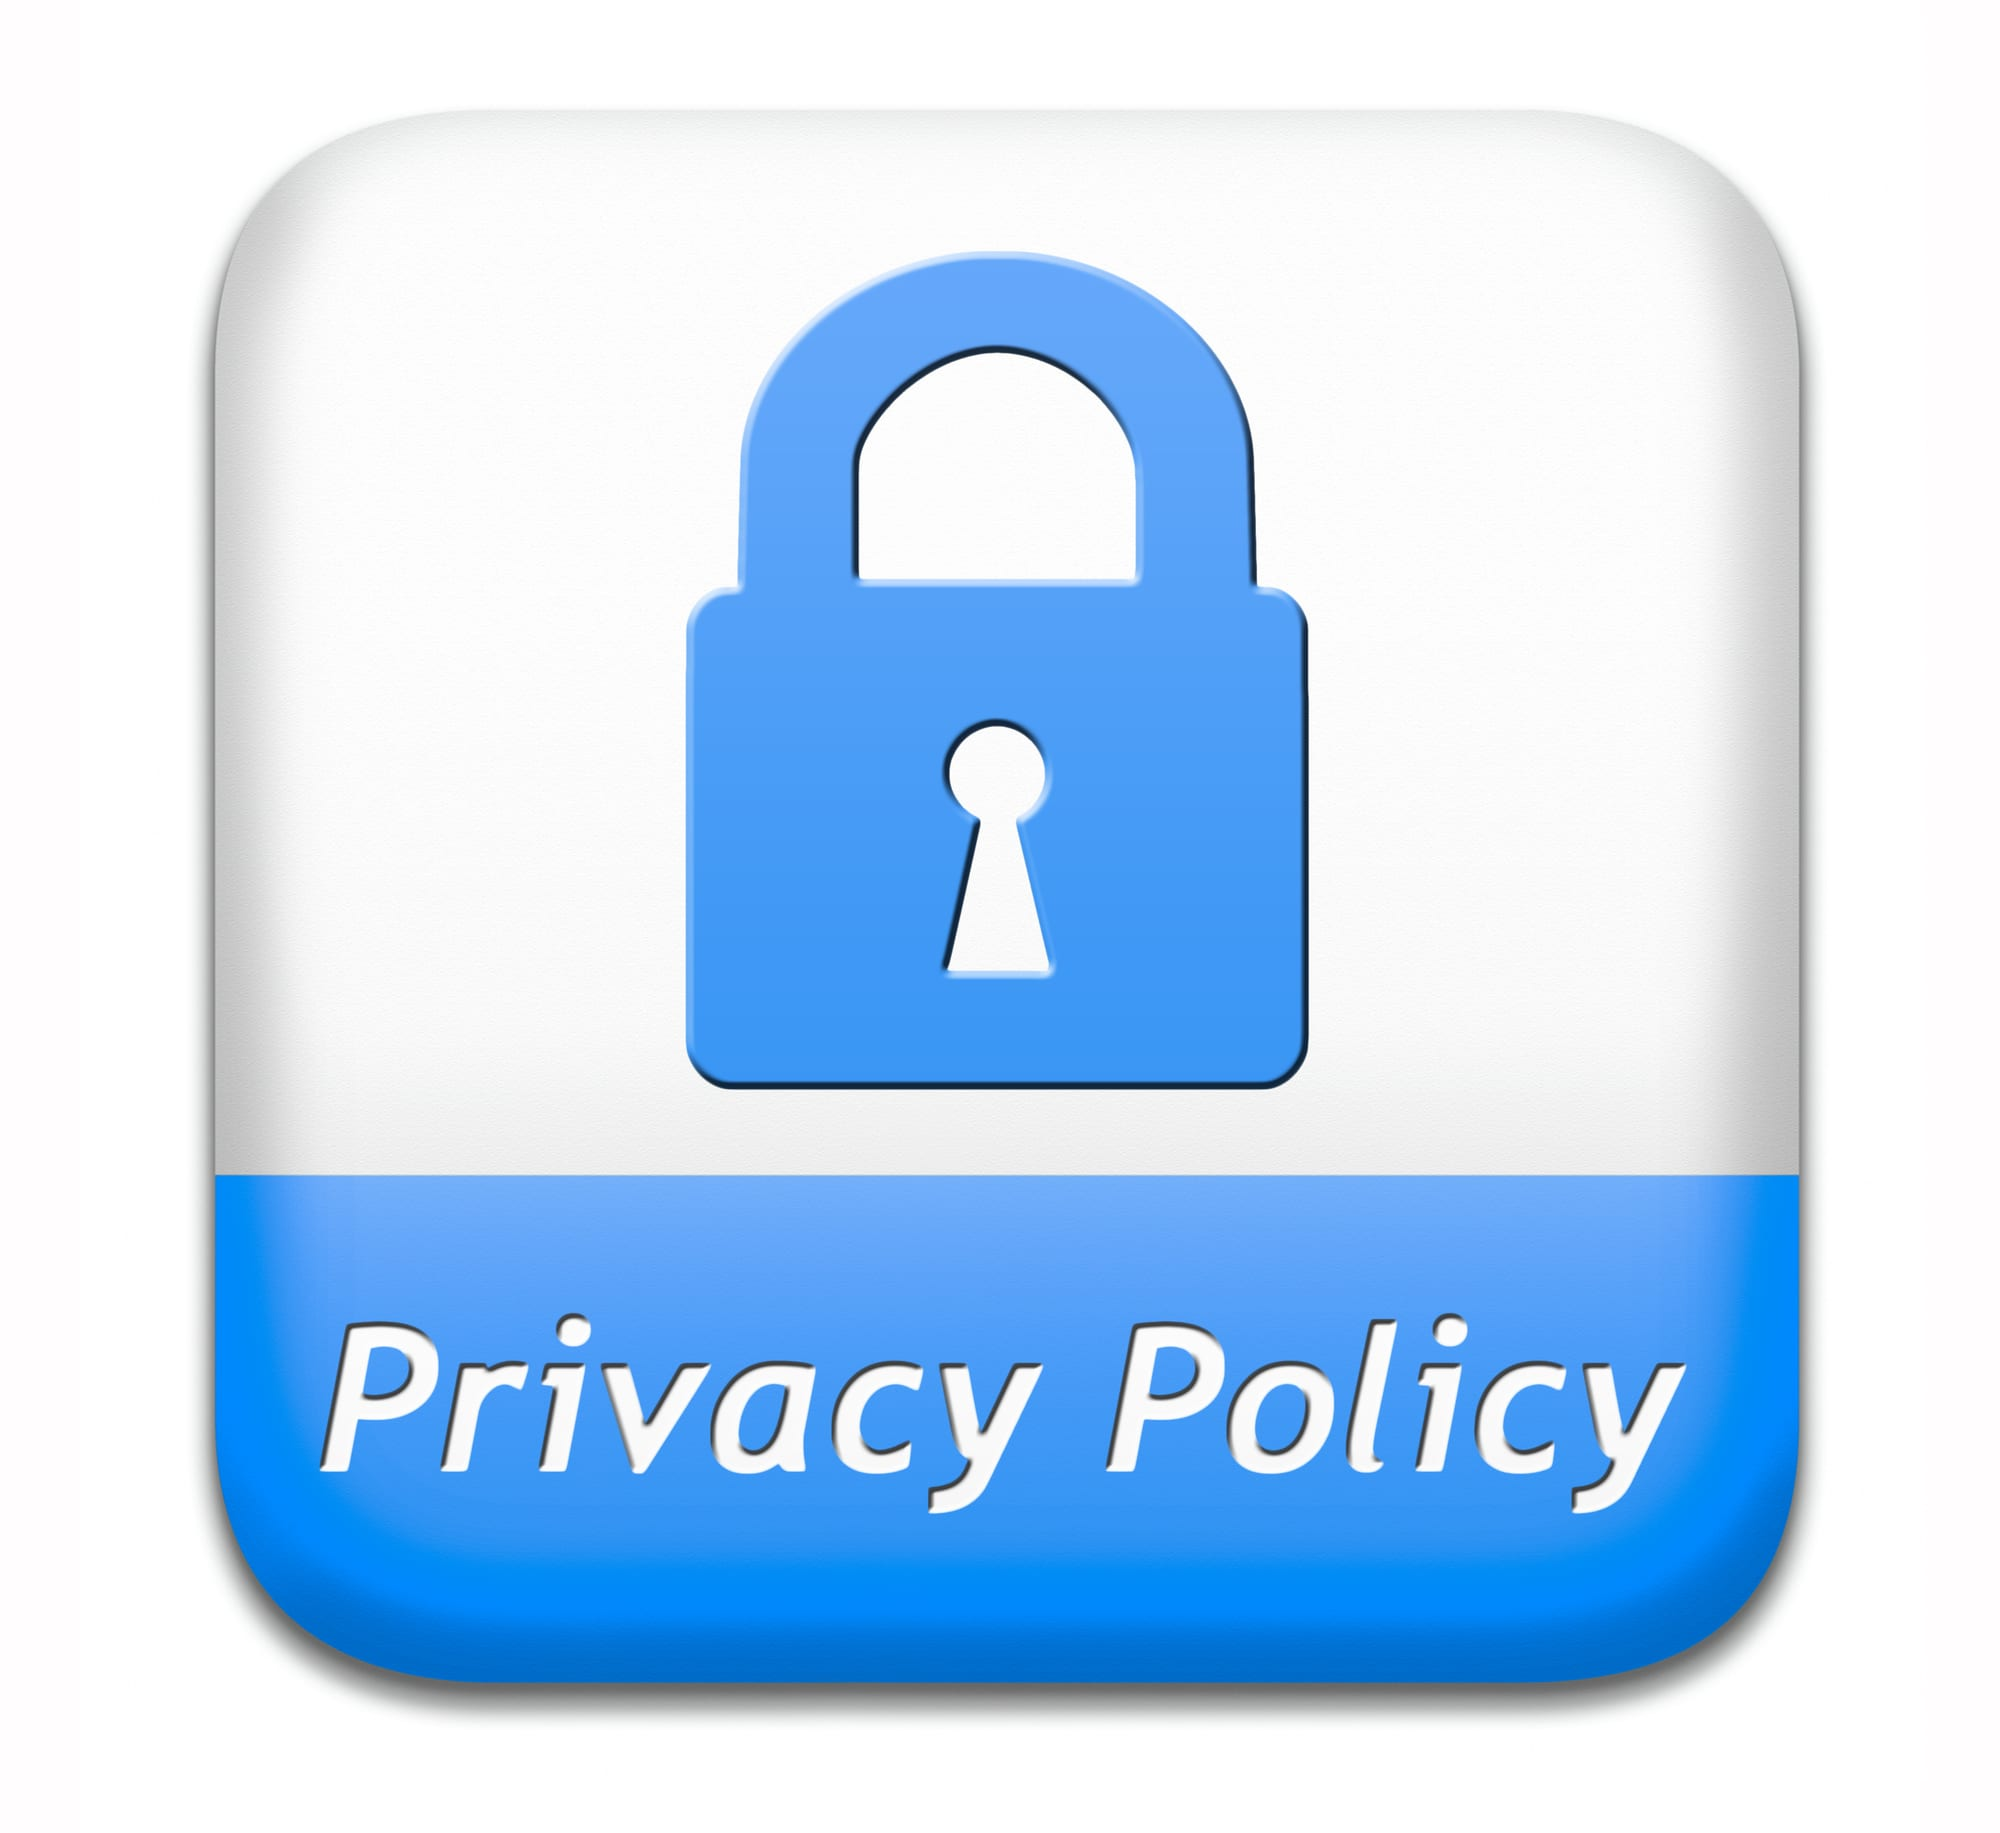 Privacy policy icon. it is important to understand how to protect your data as both an individual and an employee.